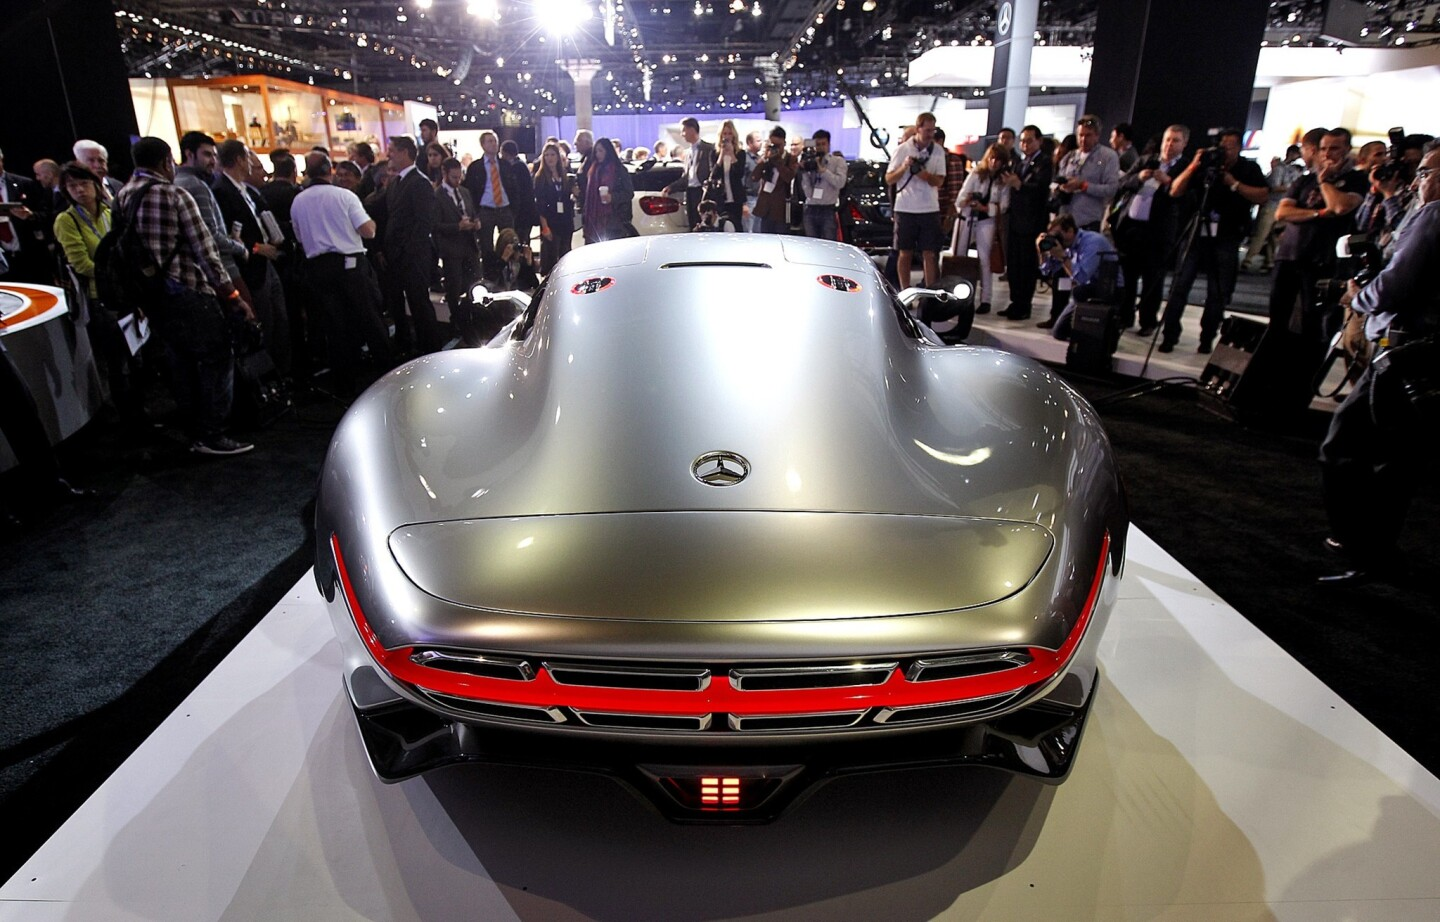 The Mercedes-Benz Vision Gran Turismo concept at the Los Angeles Auto Show.